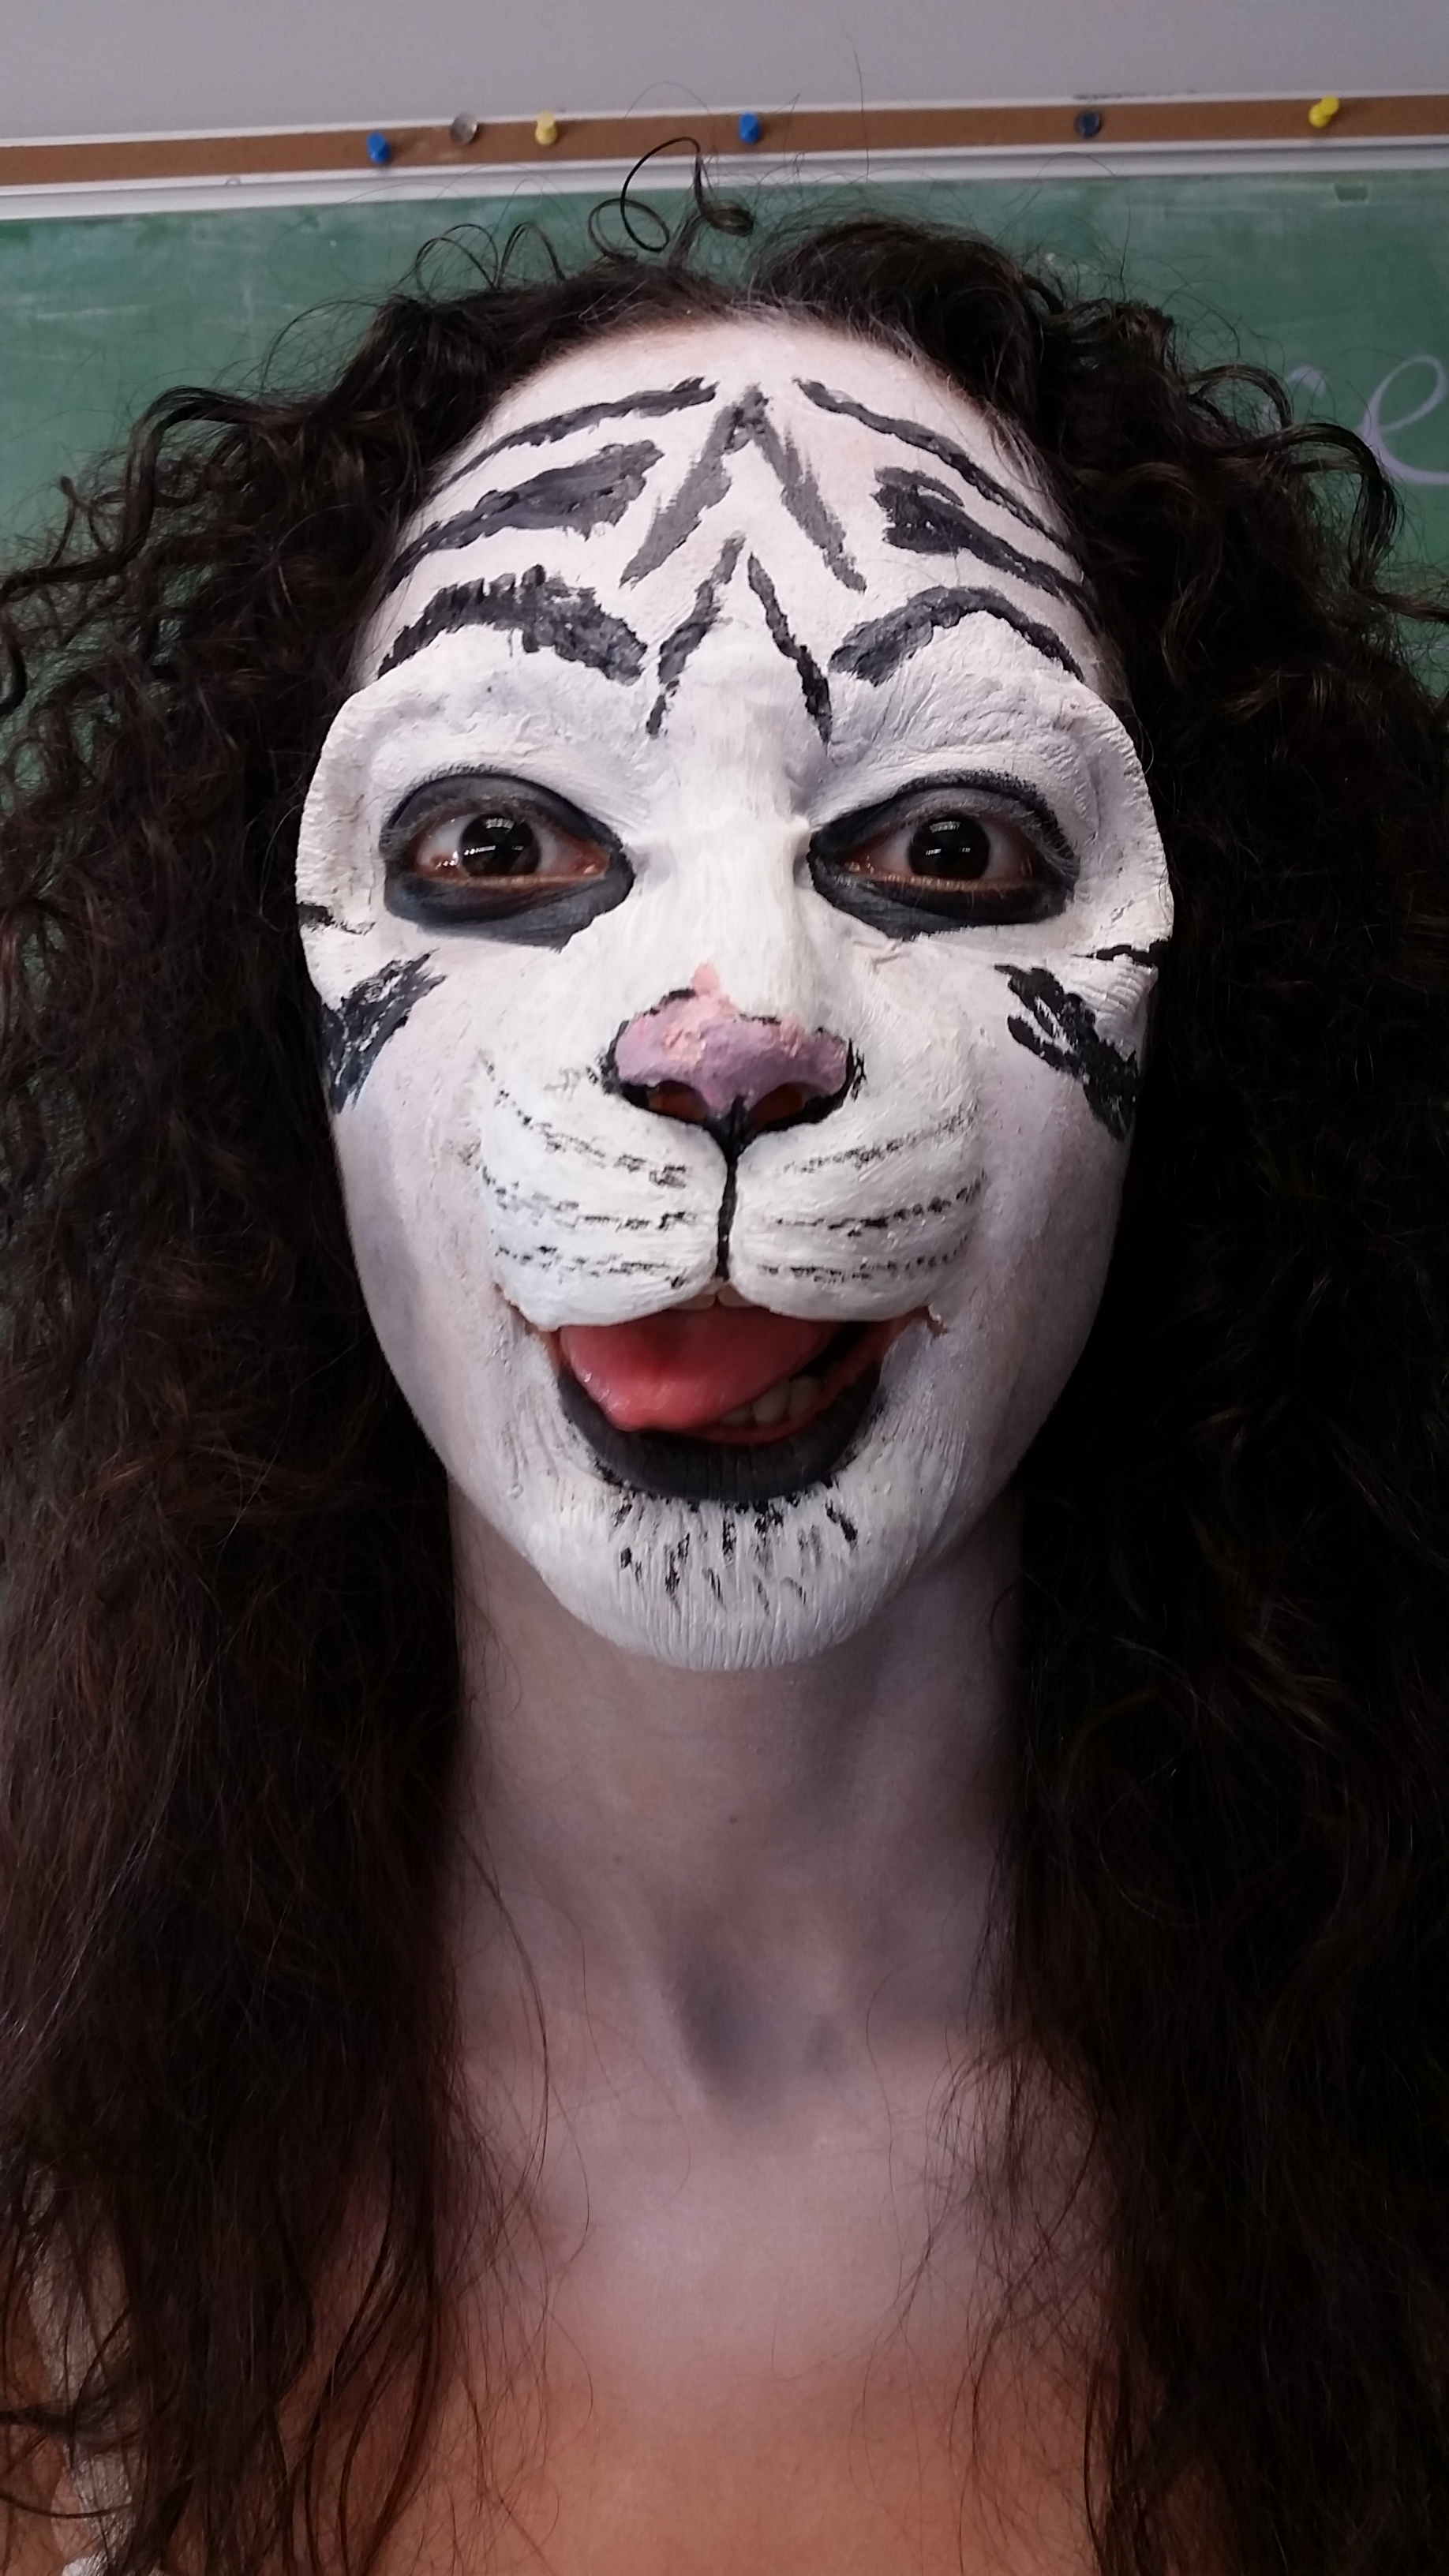 Four part custom cast latex prosthetic tiger makeup inspired by doctor seuss. Model: Maydi Diaz